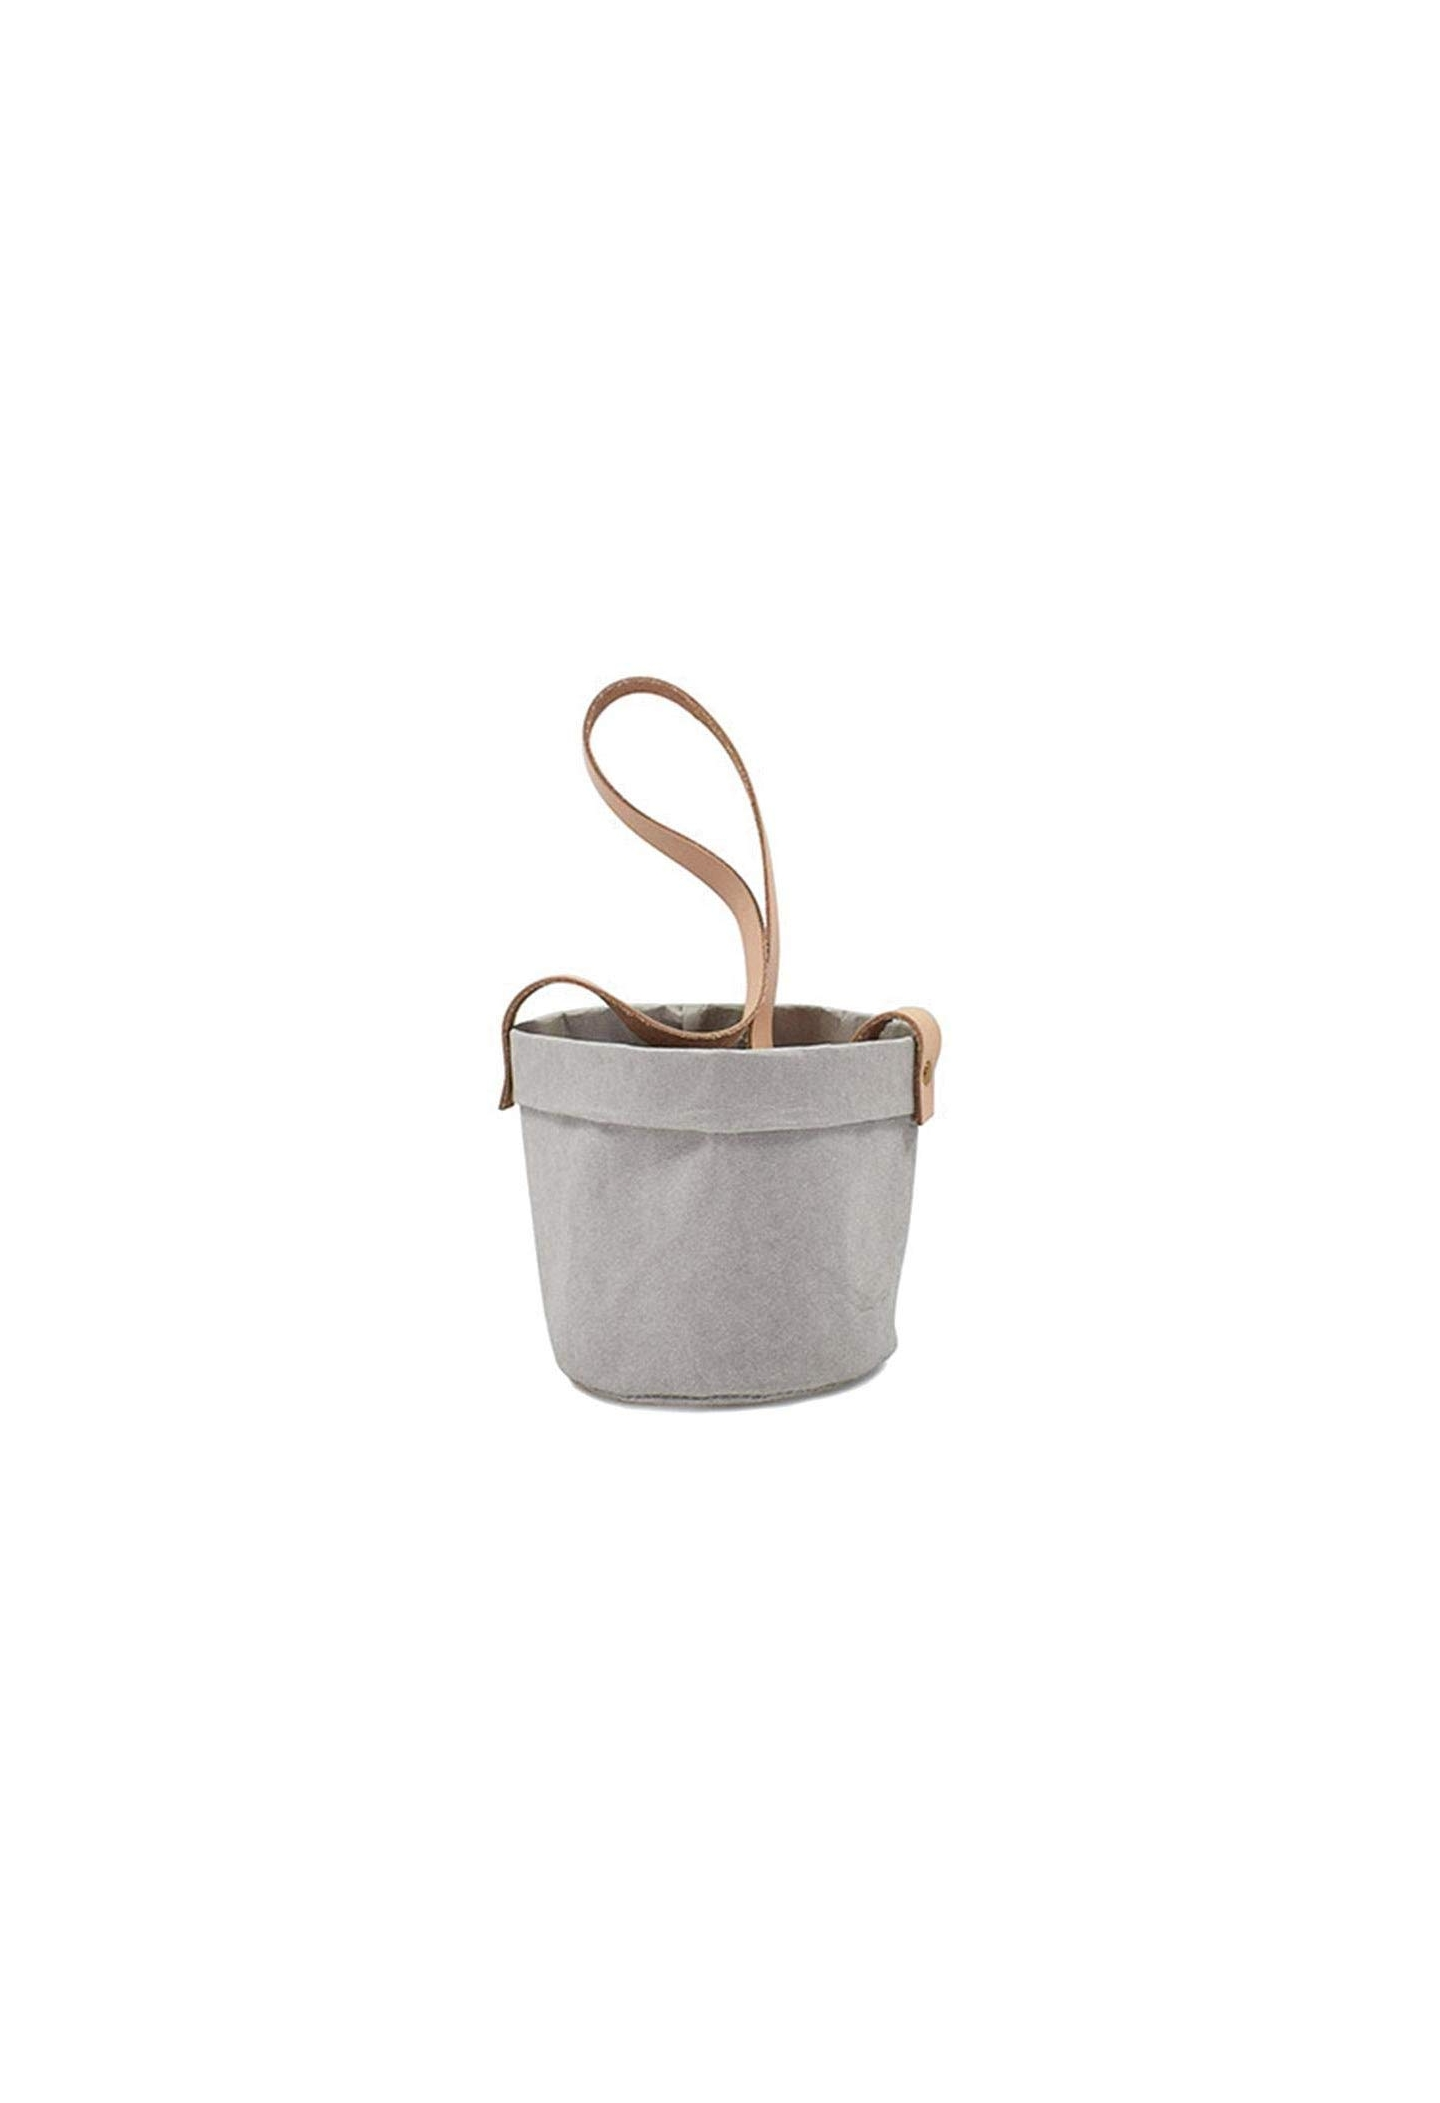 HANGING PAPER PLANT SACKS WITH LEATHER STRAP - SHOP STYLES